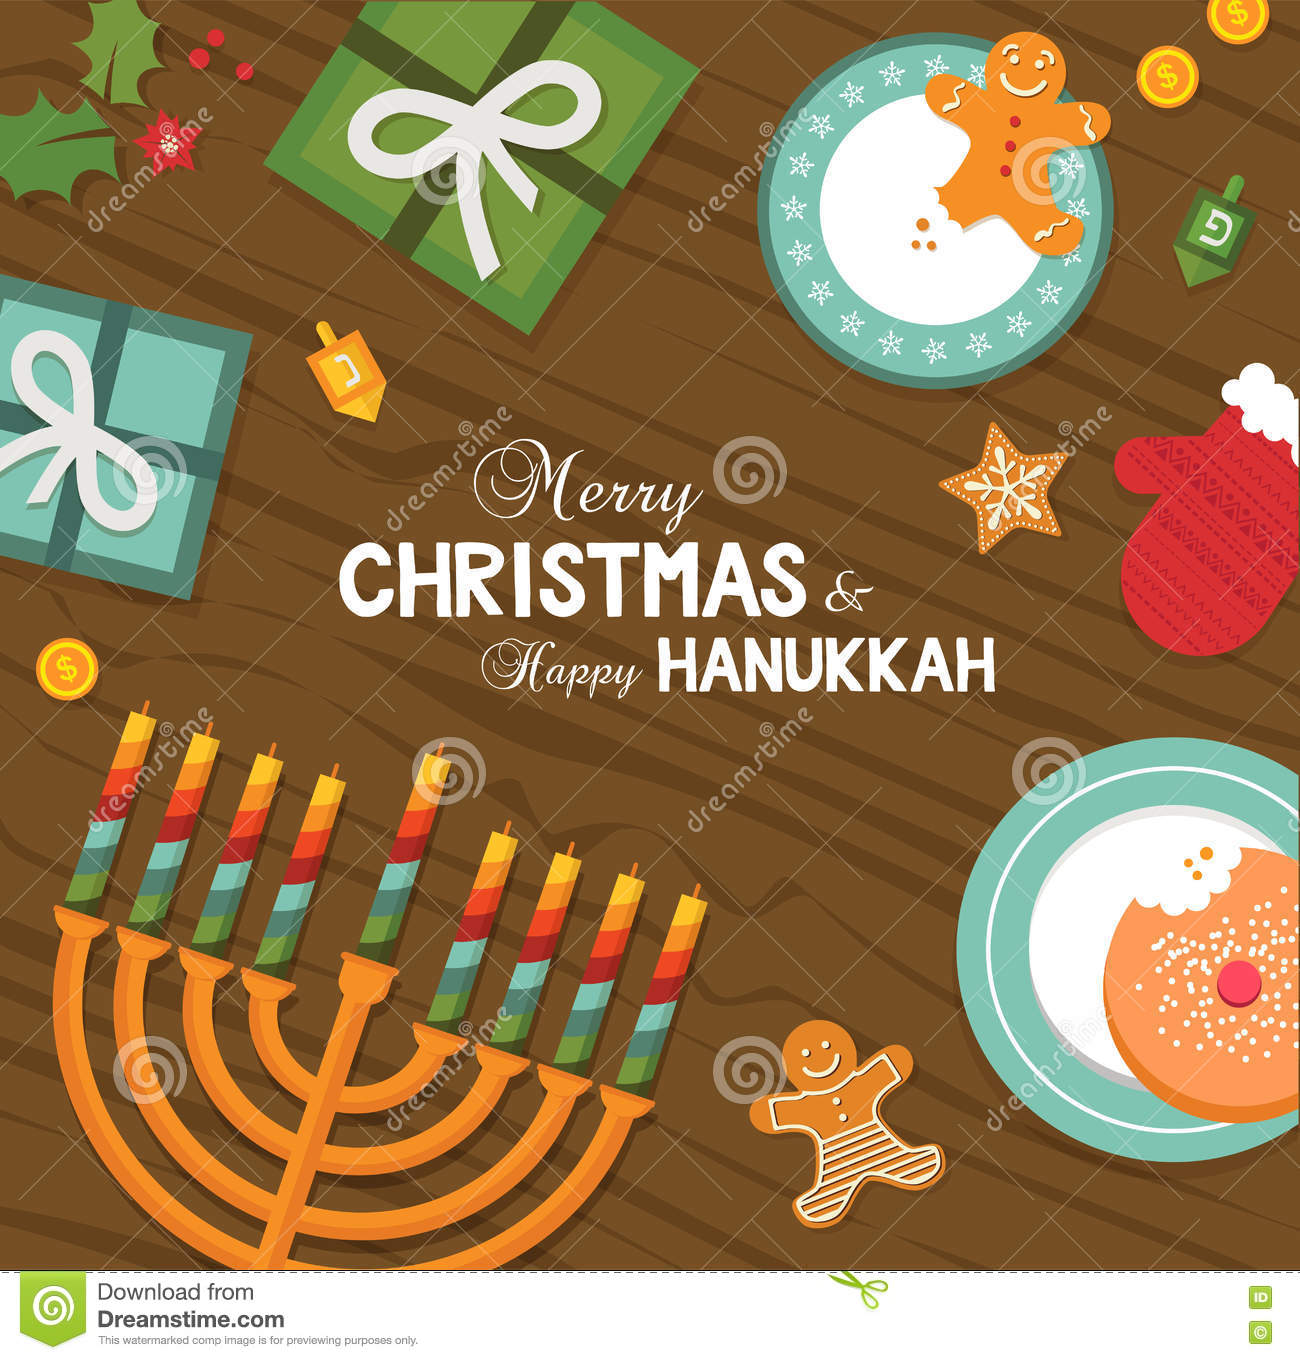 merry christmas and happy hanukkah celebration